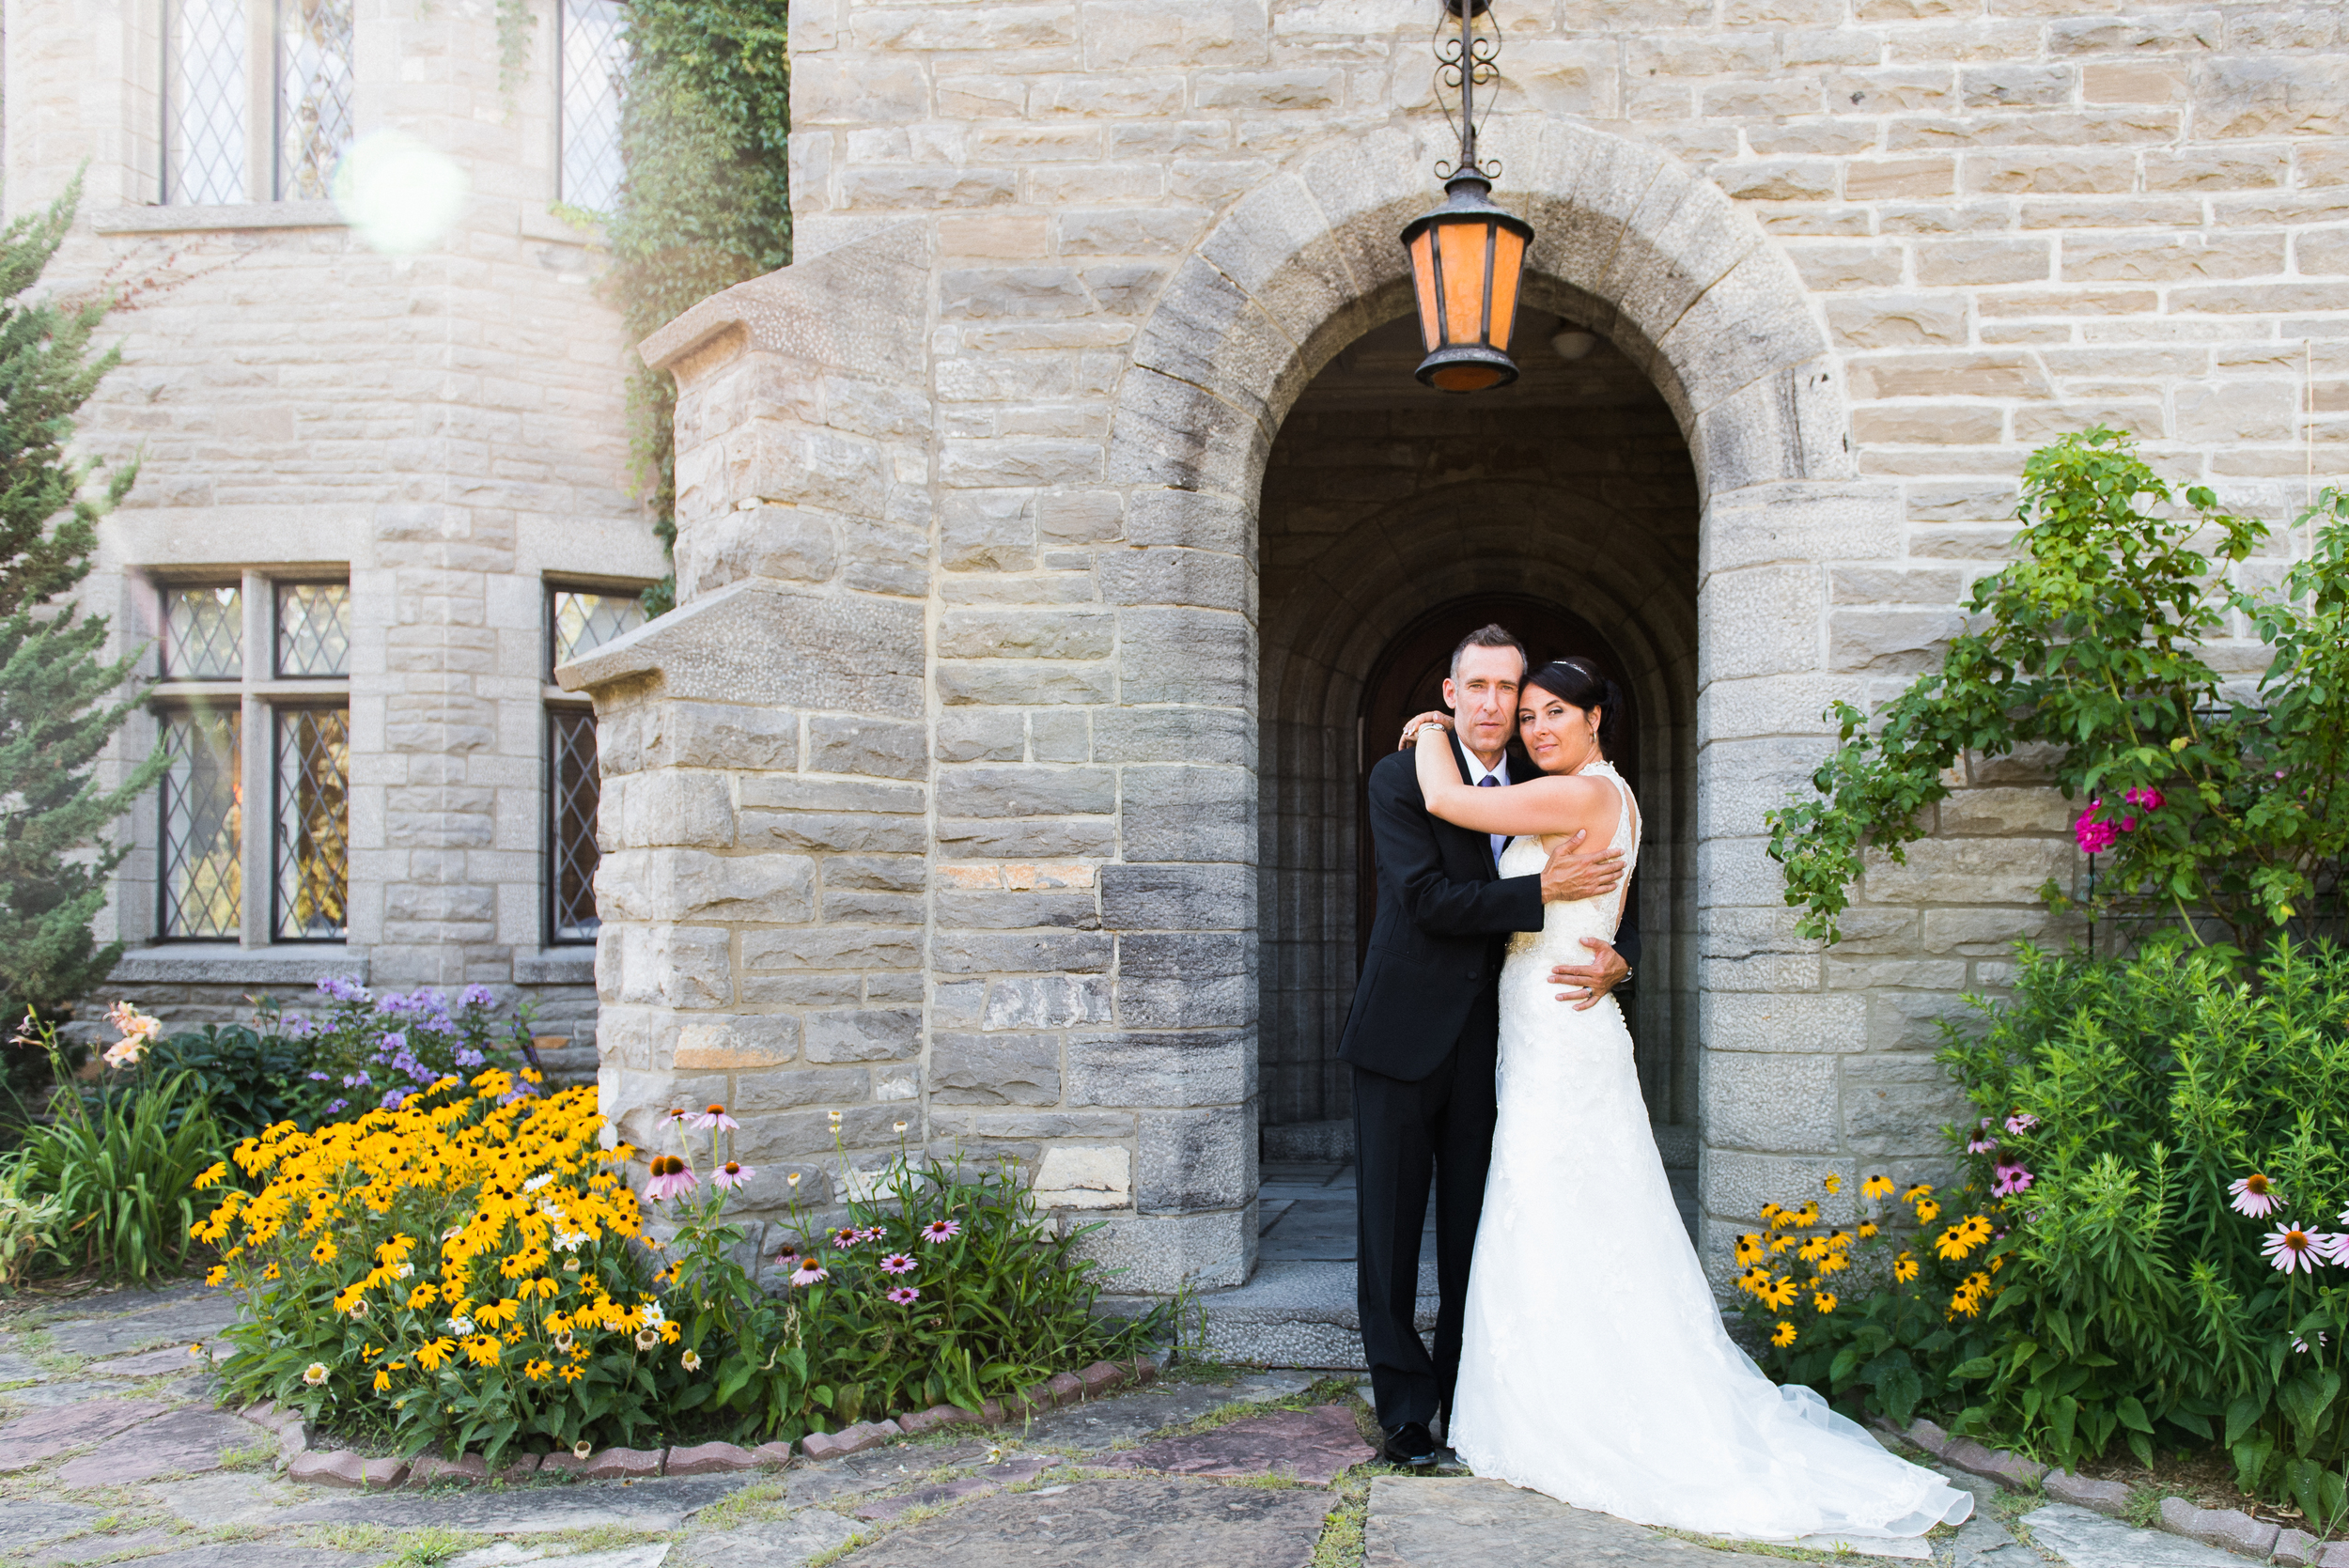 Melanie+JJ at Chateau Monsarrat Quebece